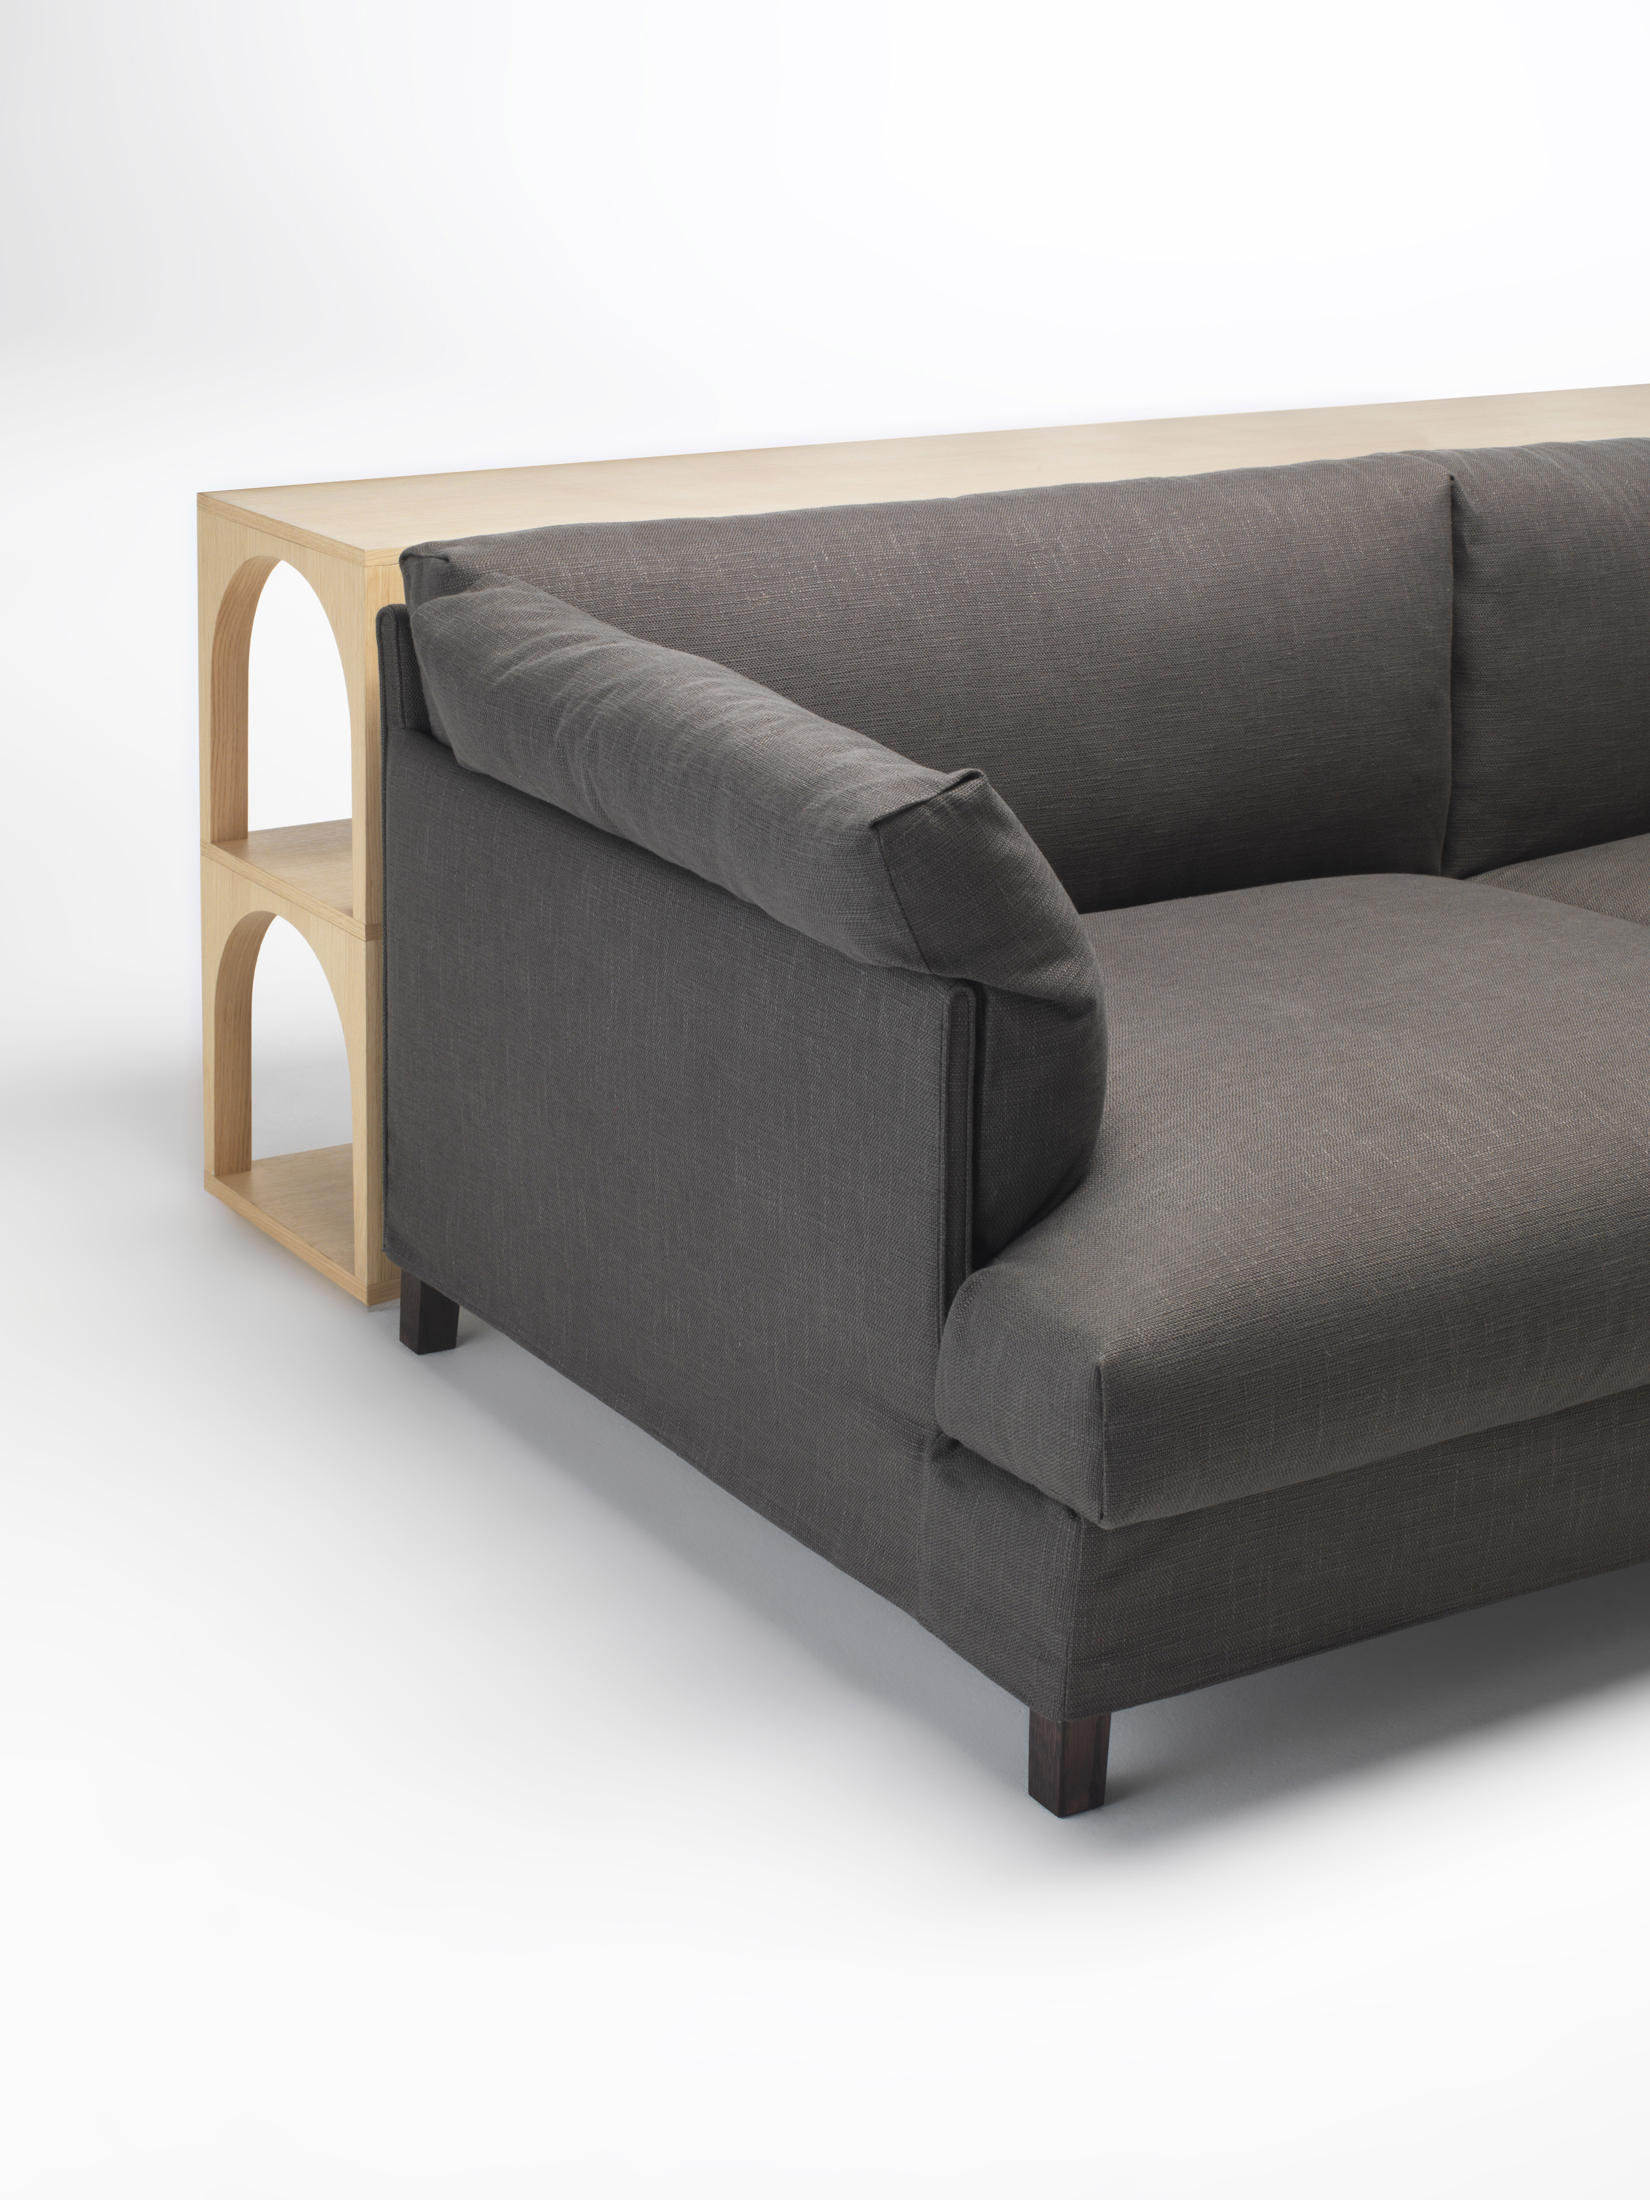 chemise sofabed sofa beds from living divani architonic. Black Bedroom Furniture Sets. Home Design Ideas